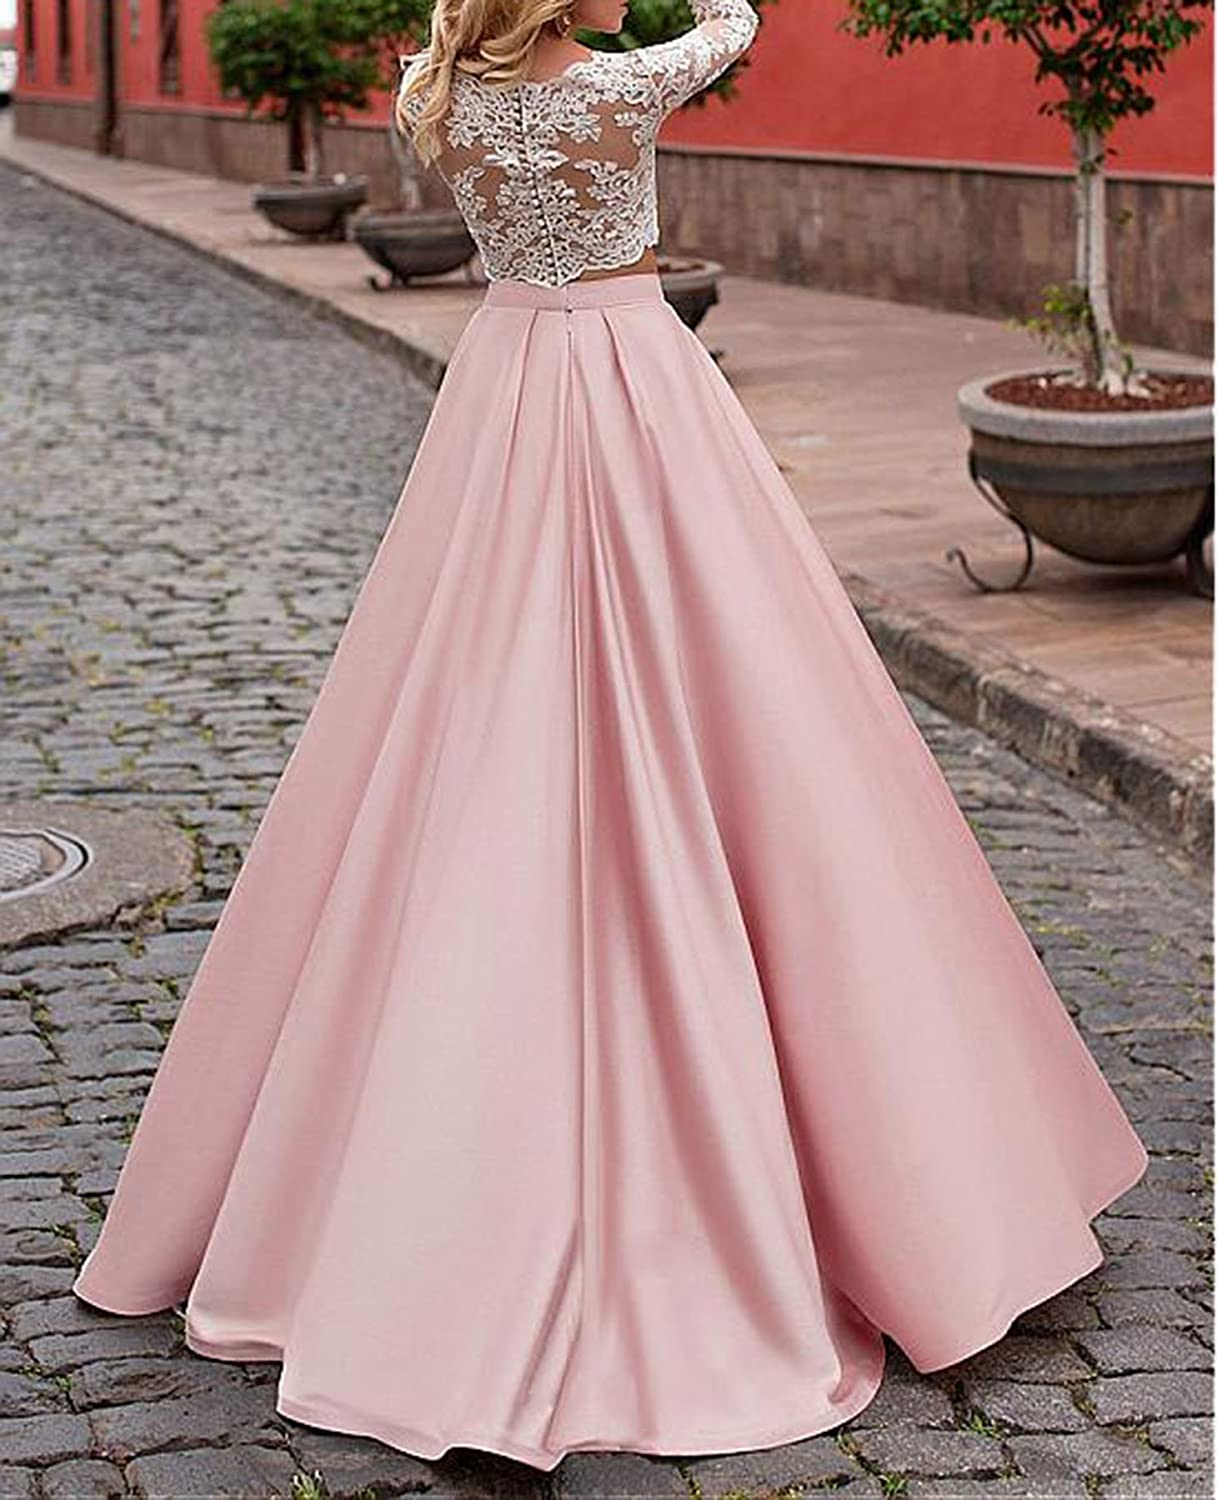 Vweil 2018 Long 2 Pieces Lace Prom Dresses for Seniors 3/4 Sleeves VD35 at Amazon Womens Clothing store: